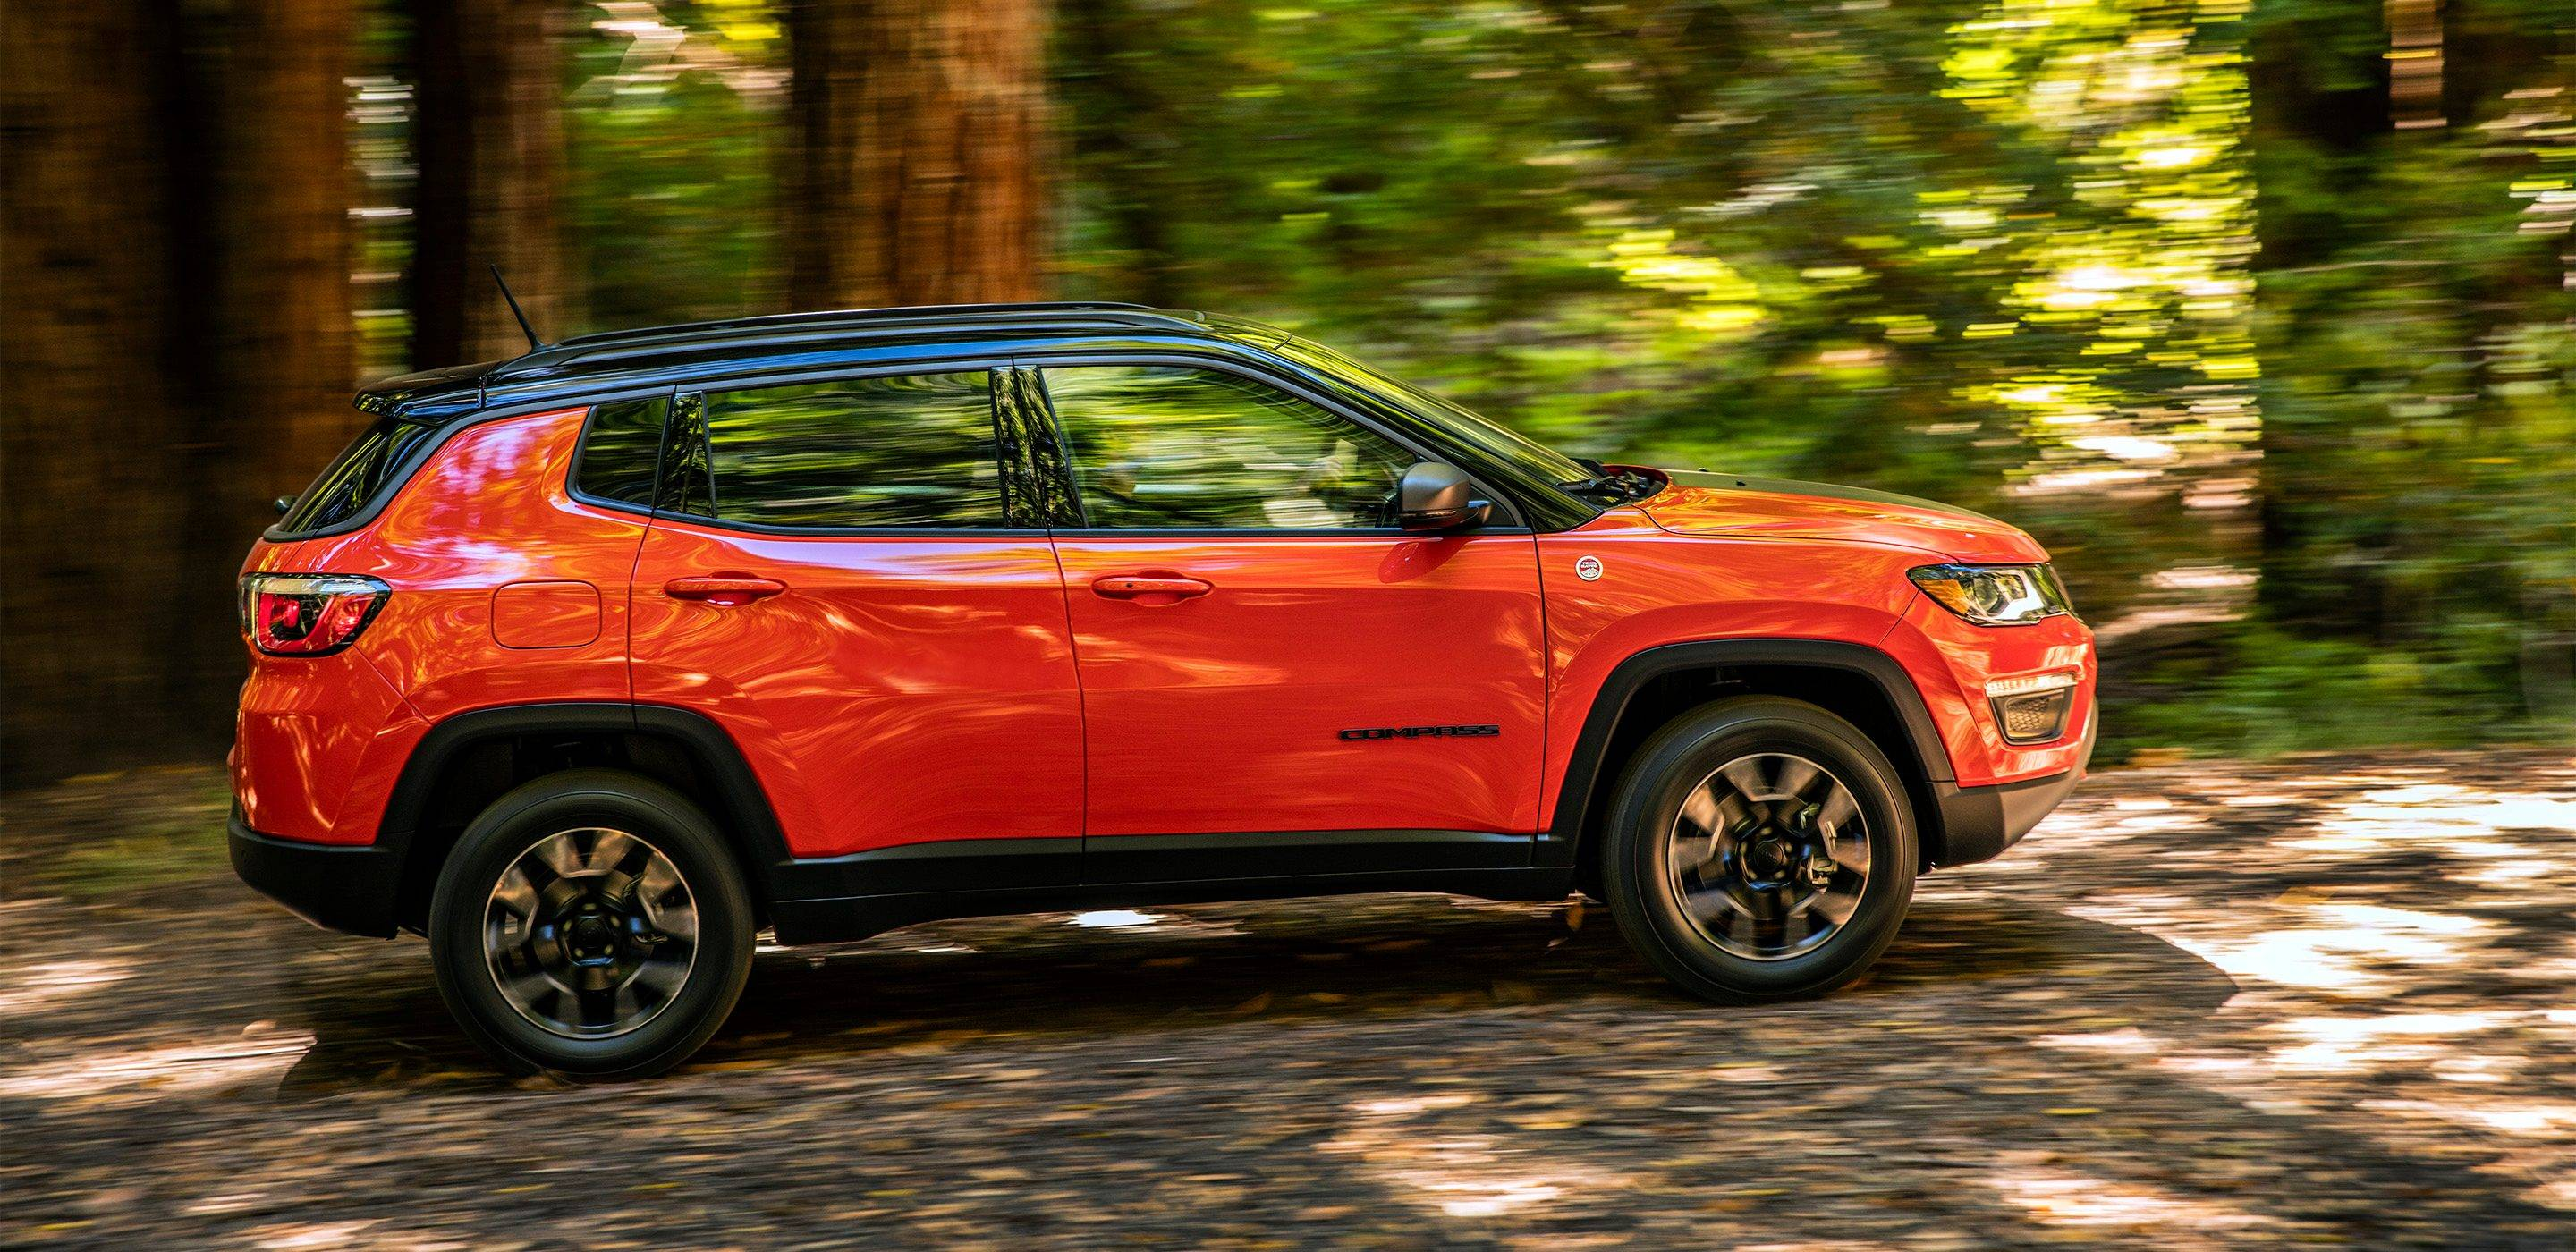 2017-Jeep-Compass-VLP-Gallery-Trailhawk-Side-Profile.jpg.image.2880